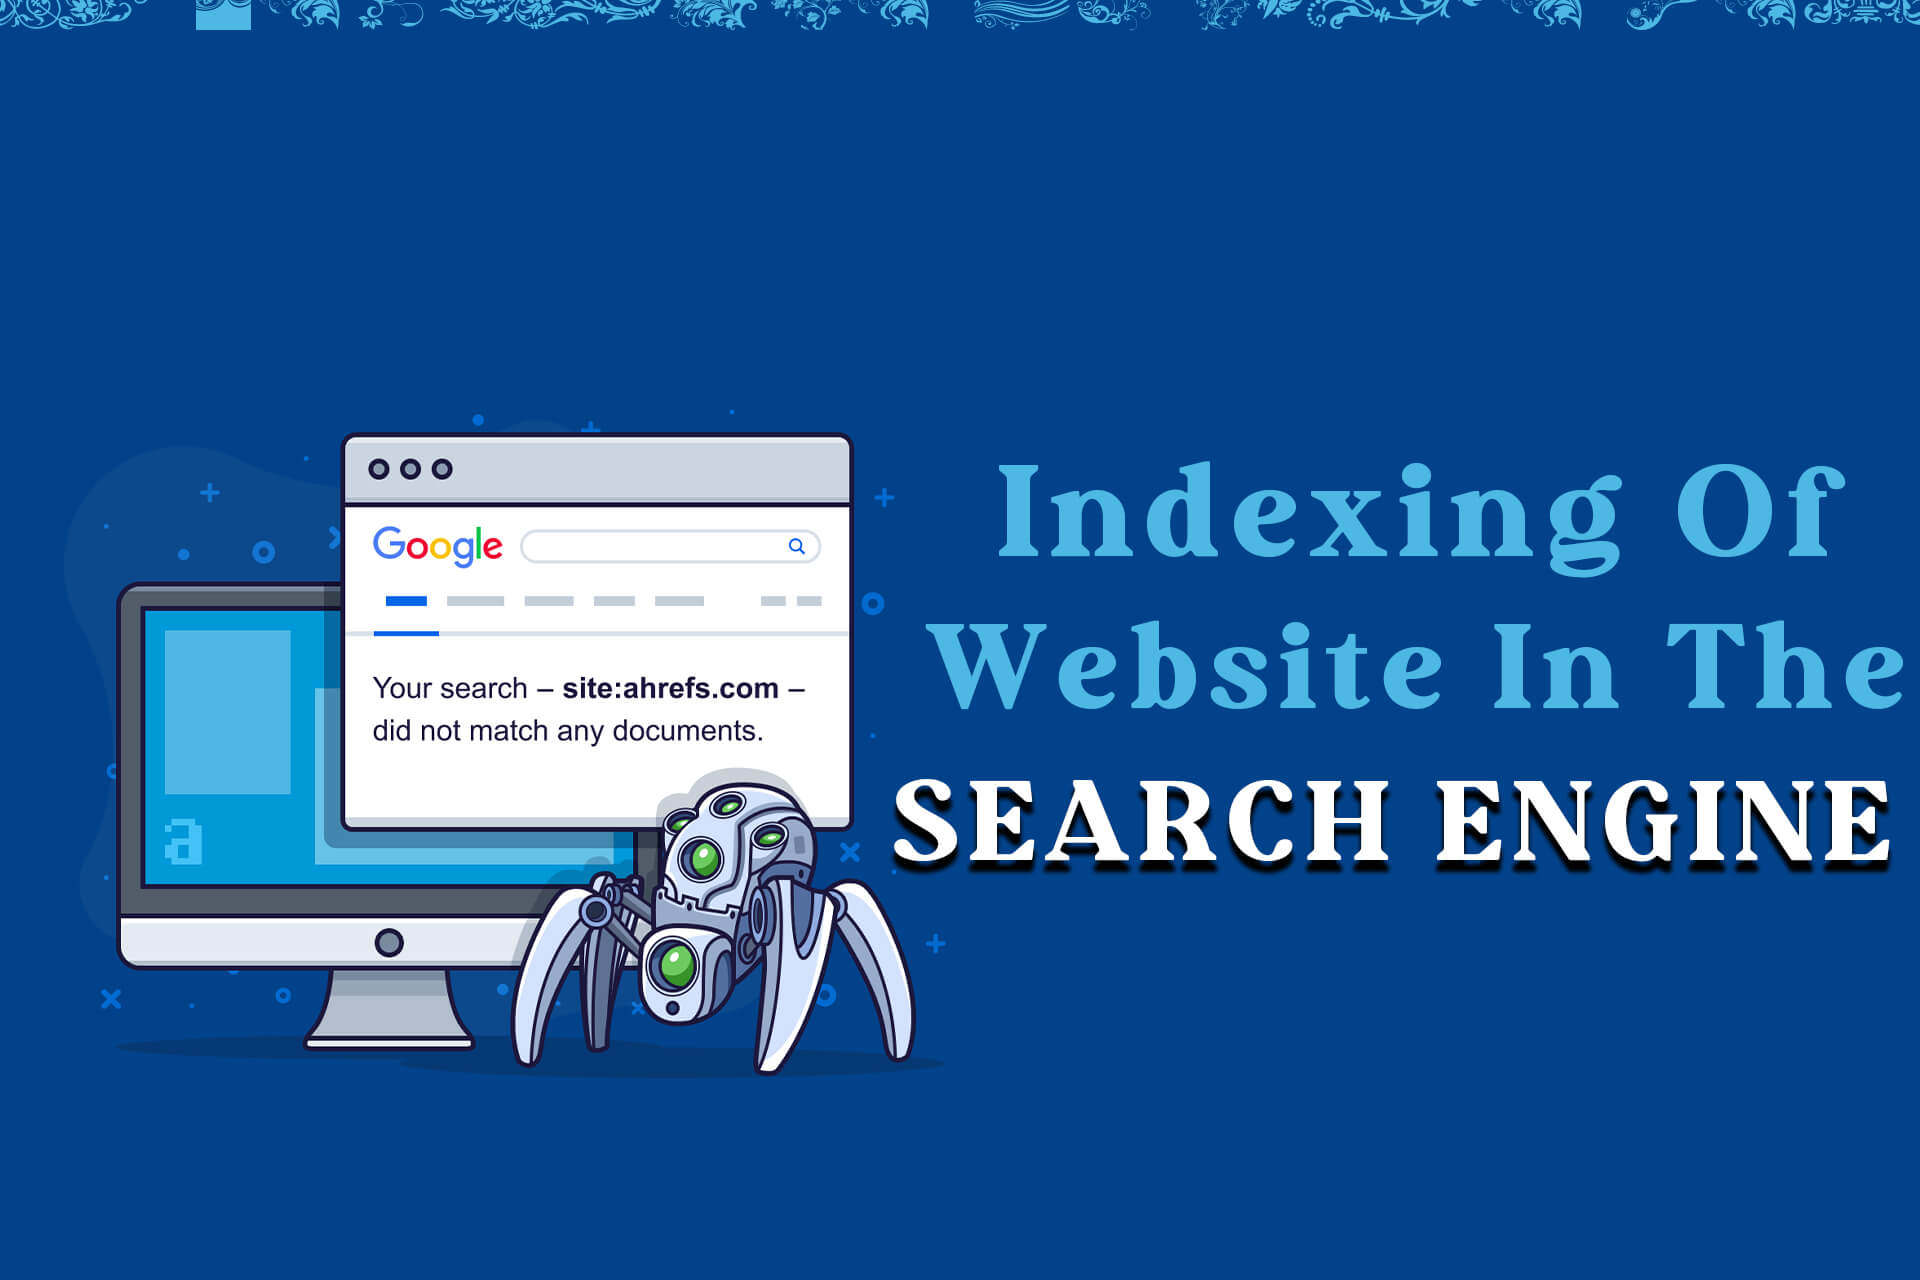 Indexing Of Website In The Search Engine